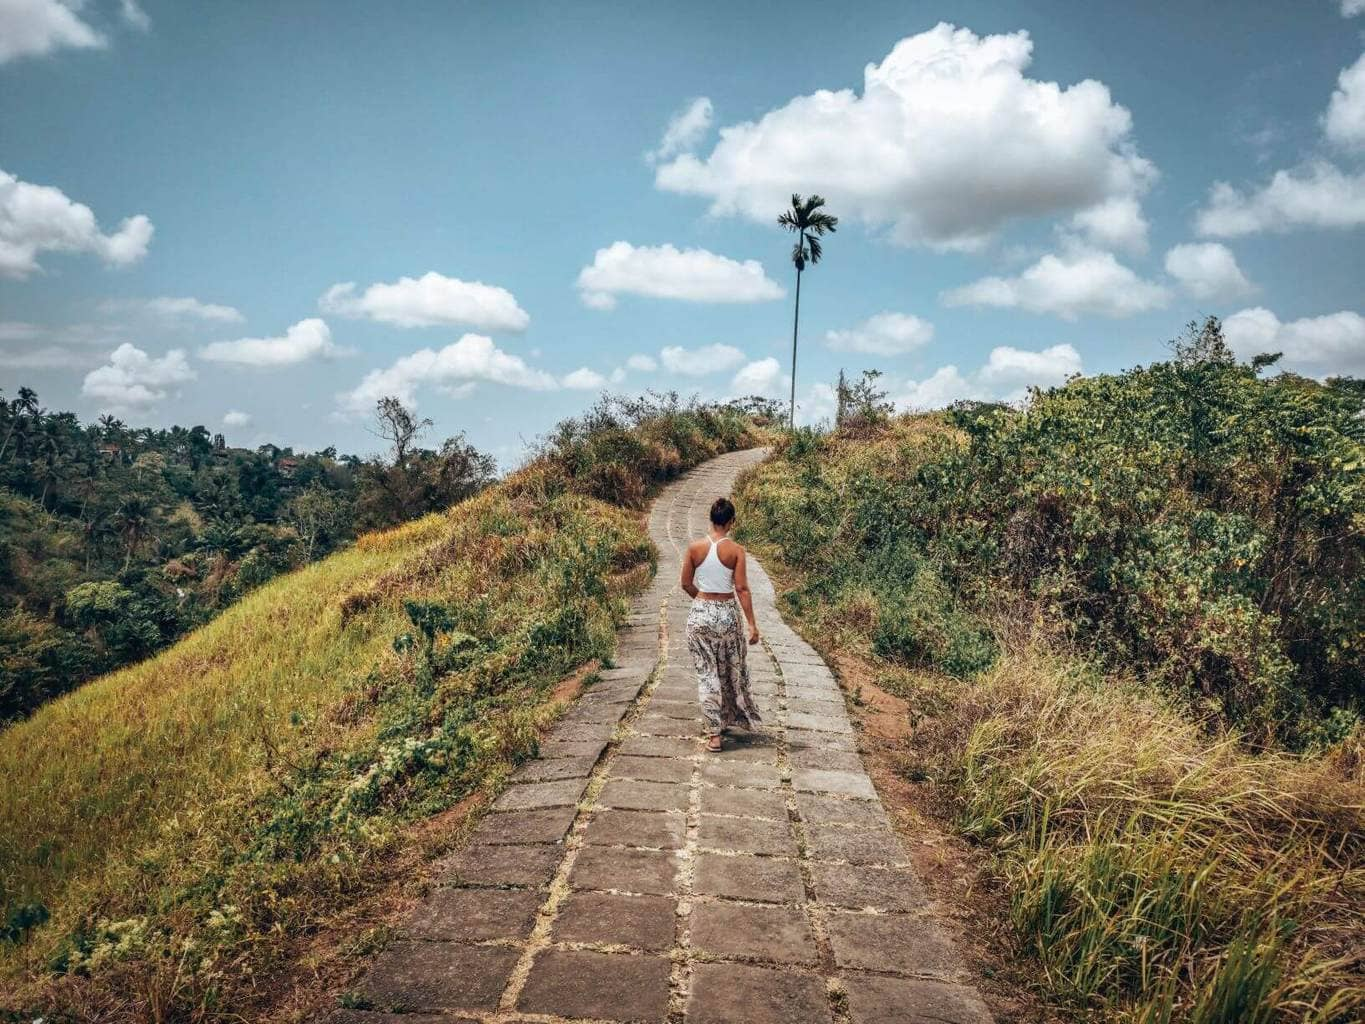 Ubud Waterfall tour - Campuhan Ridge Walk